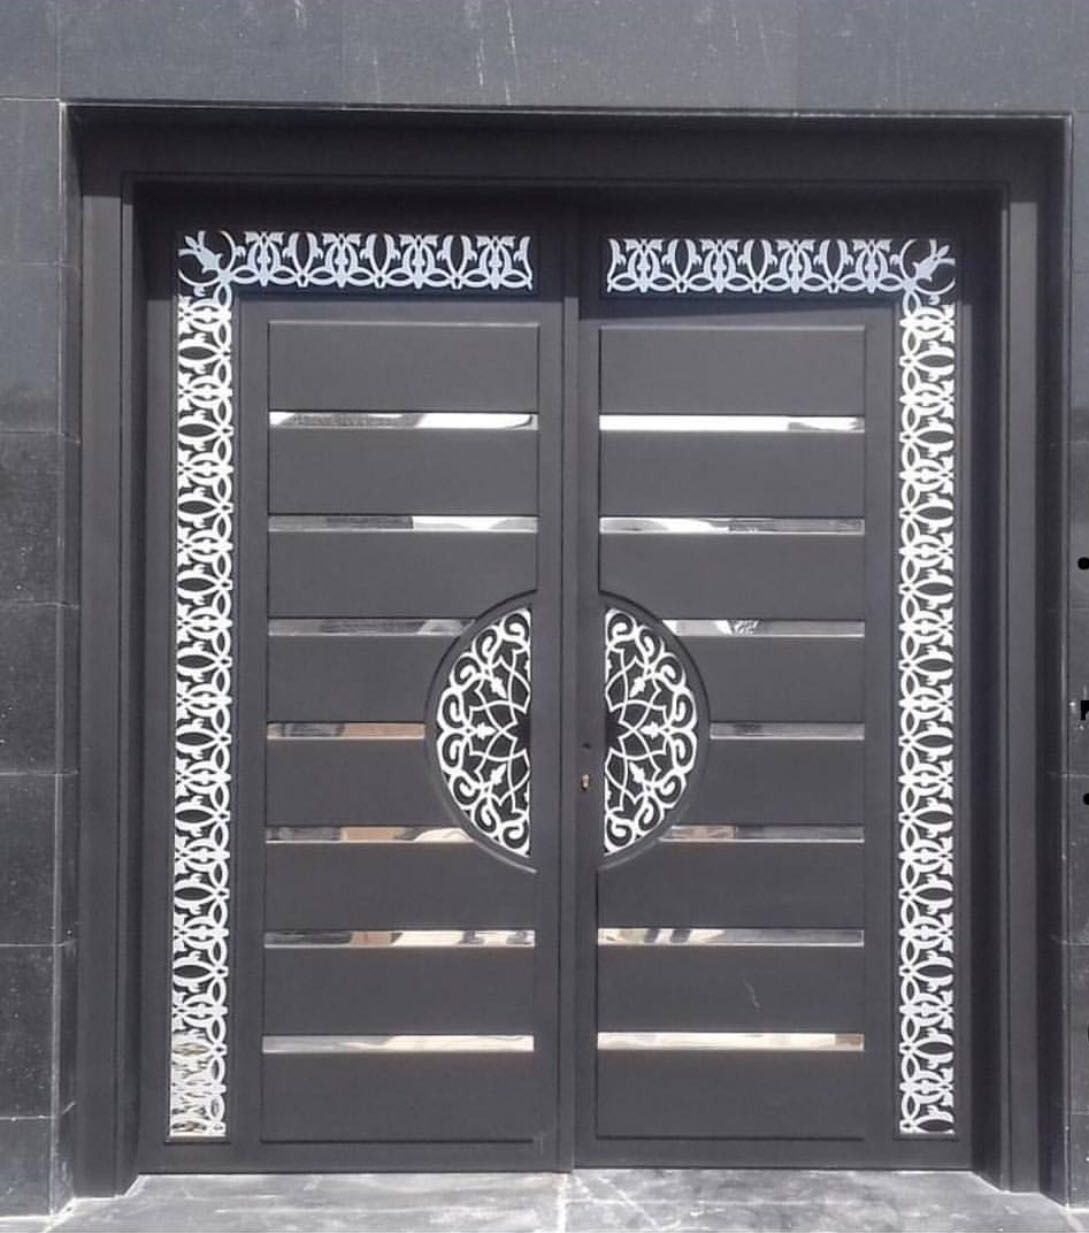 Home Design Gate Ideas: #saudiarabia #riyadh #doors #gates #design #cnc #lifestyle